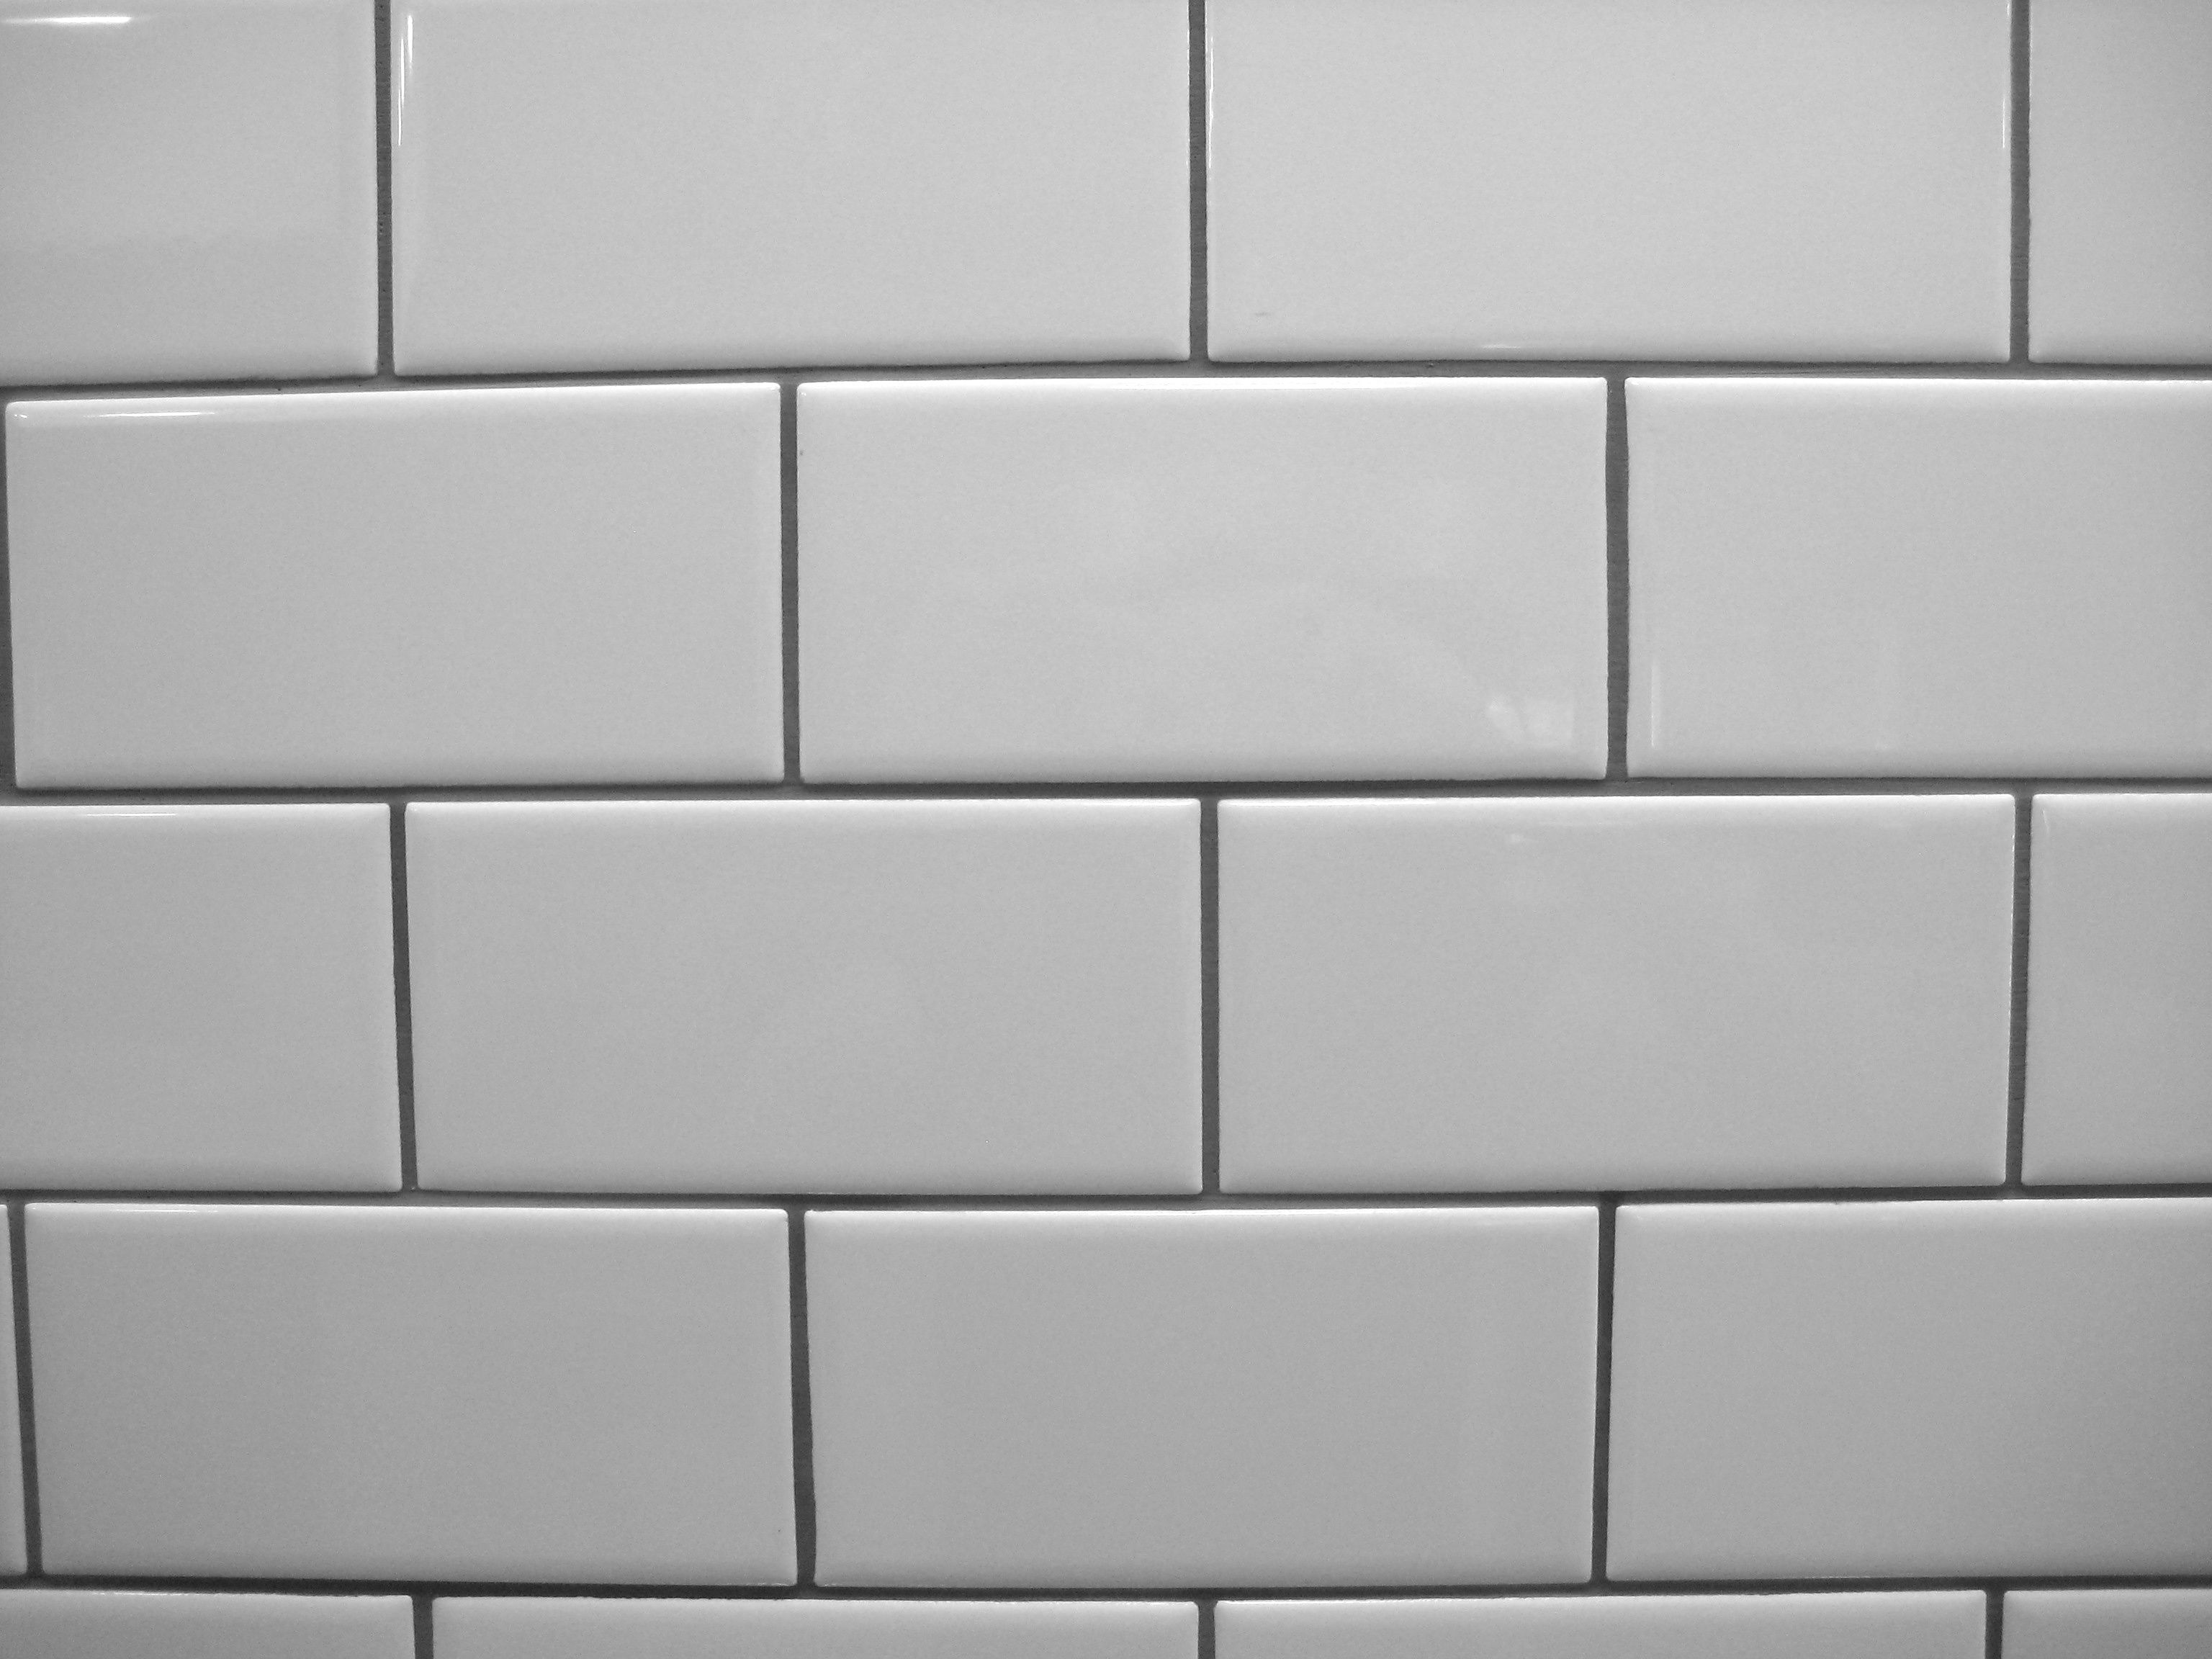 - Bluehost.com Grey Grout, White Subway Tiles, White Subway Tile